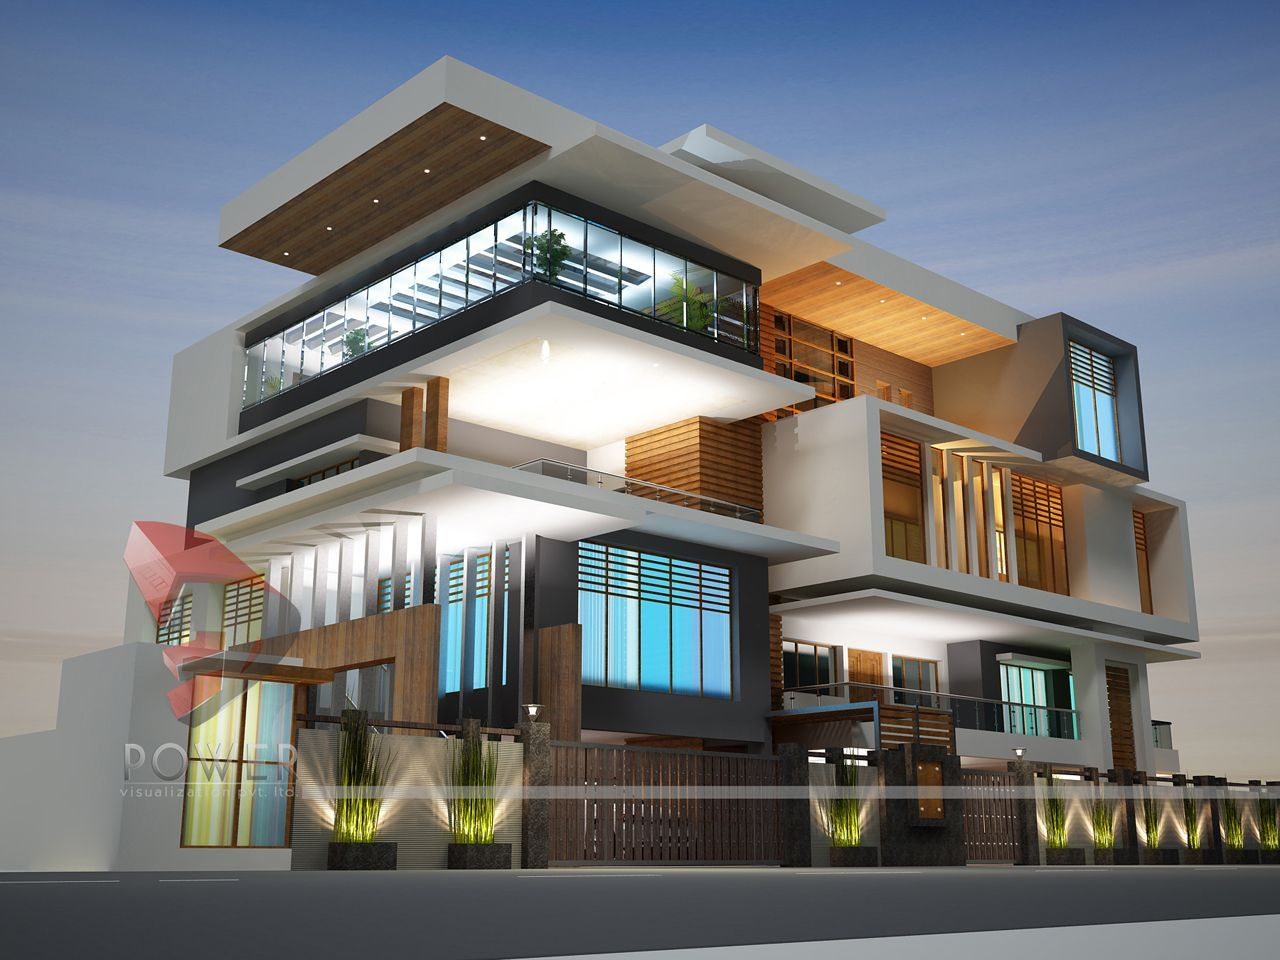 Modern house design in india architecture india modern for Modern house model